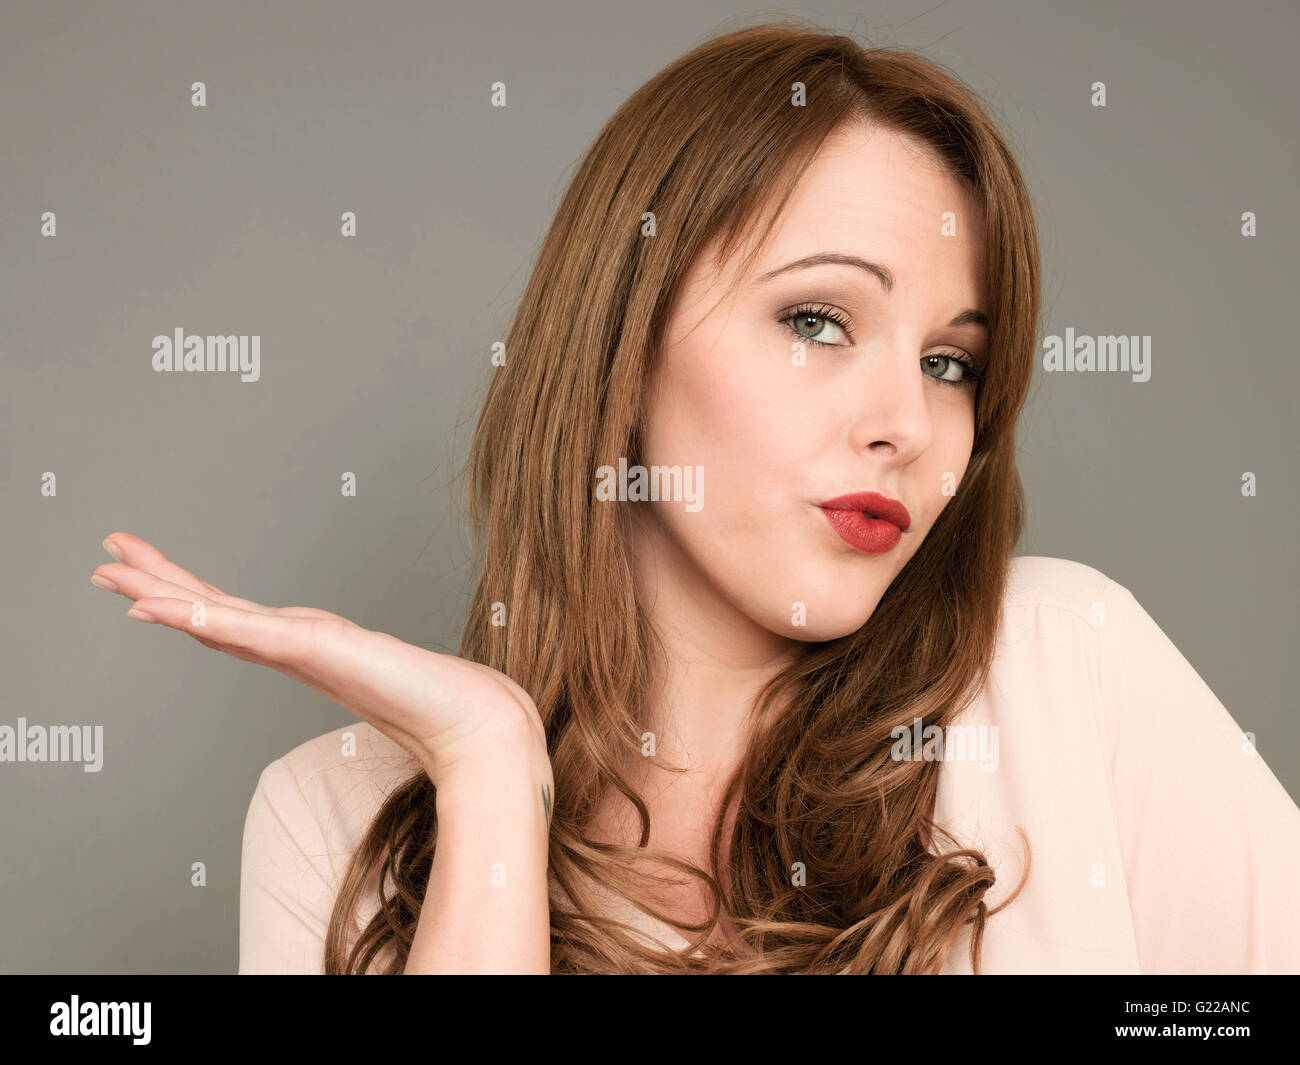 Portrait of a Woman Discussing or Arguing a Point or Opinion in Perhaps a Political or Public Debate - Stock Image